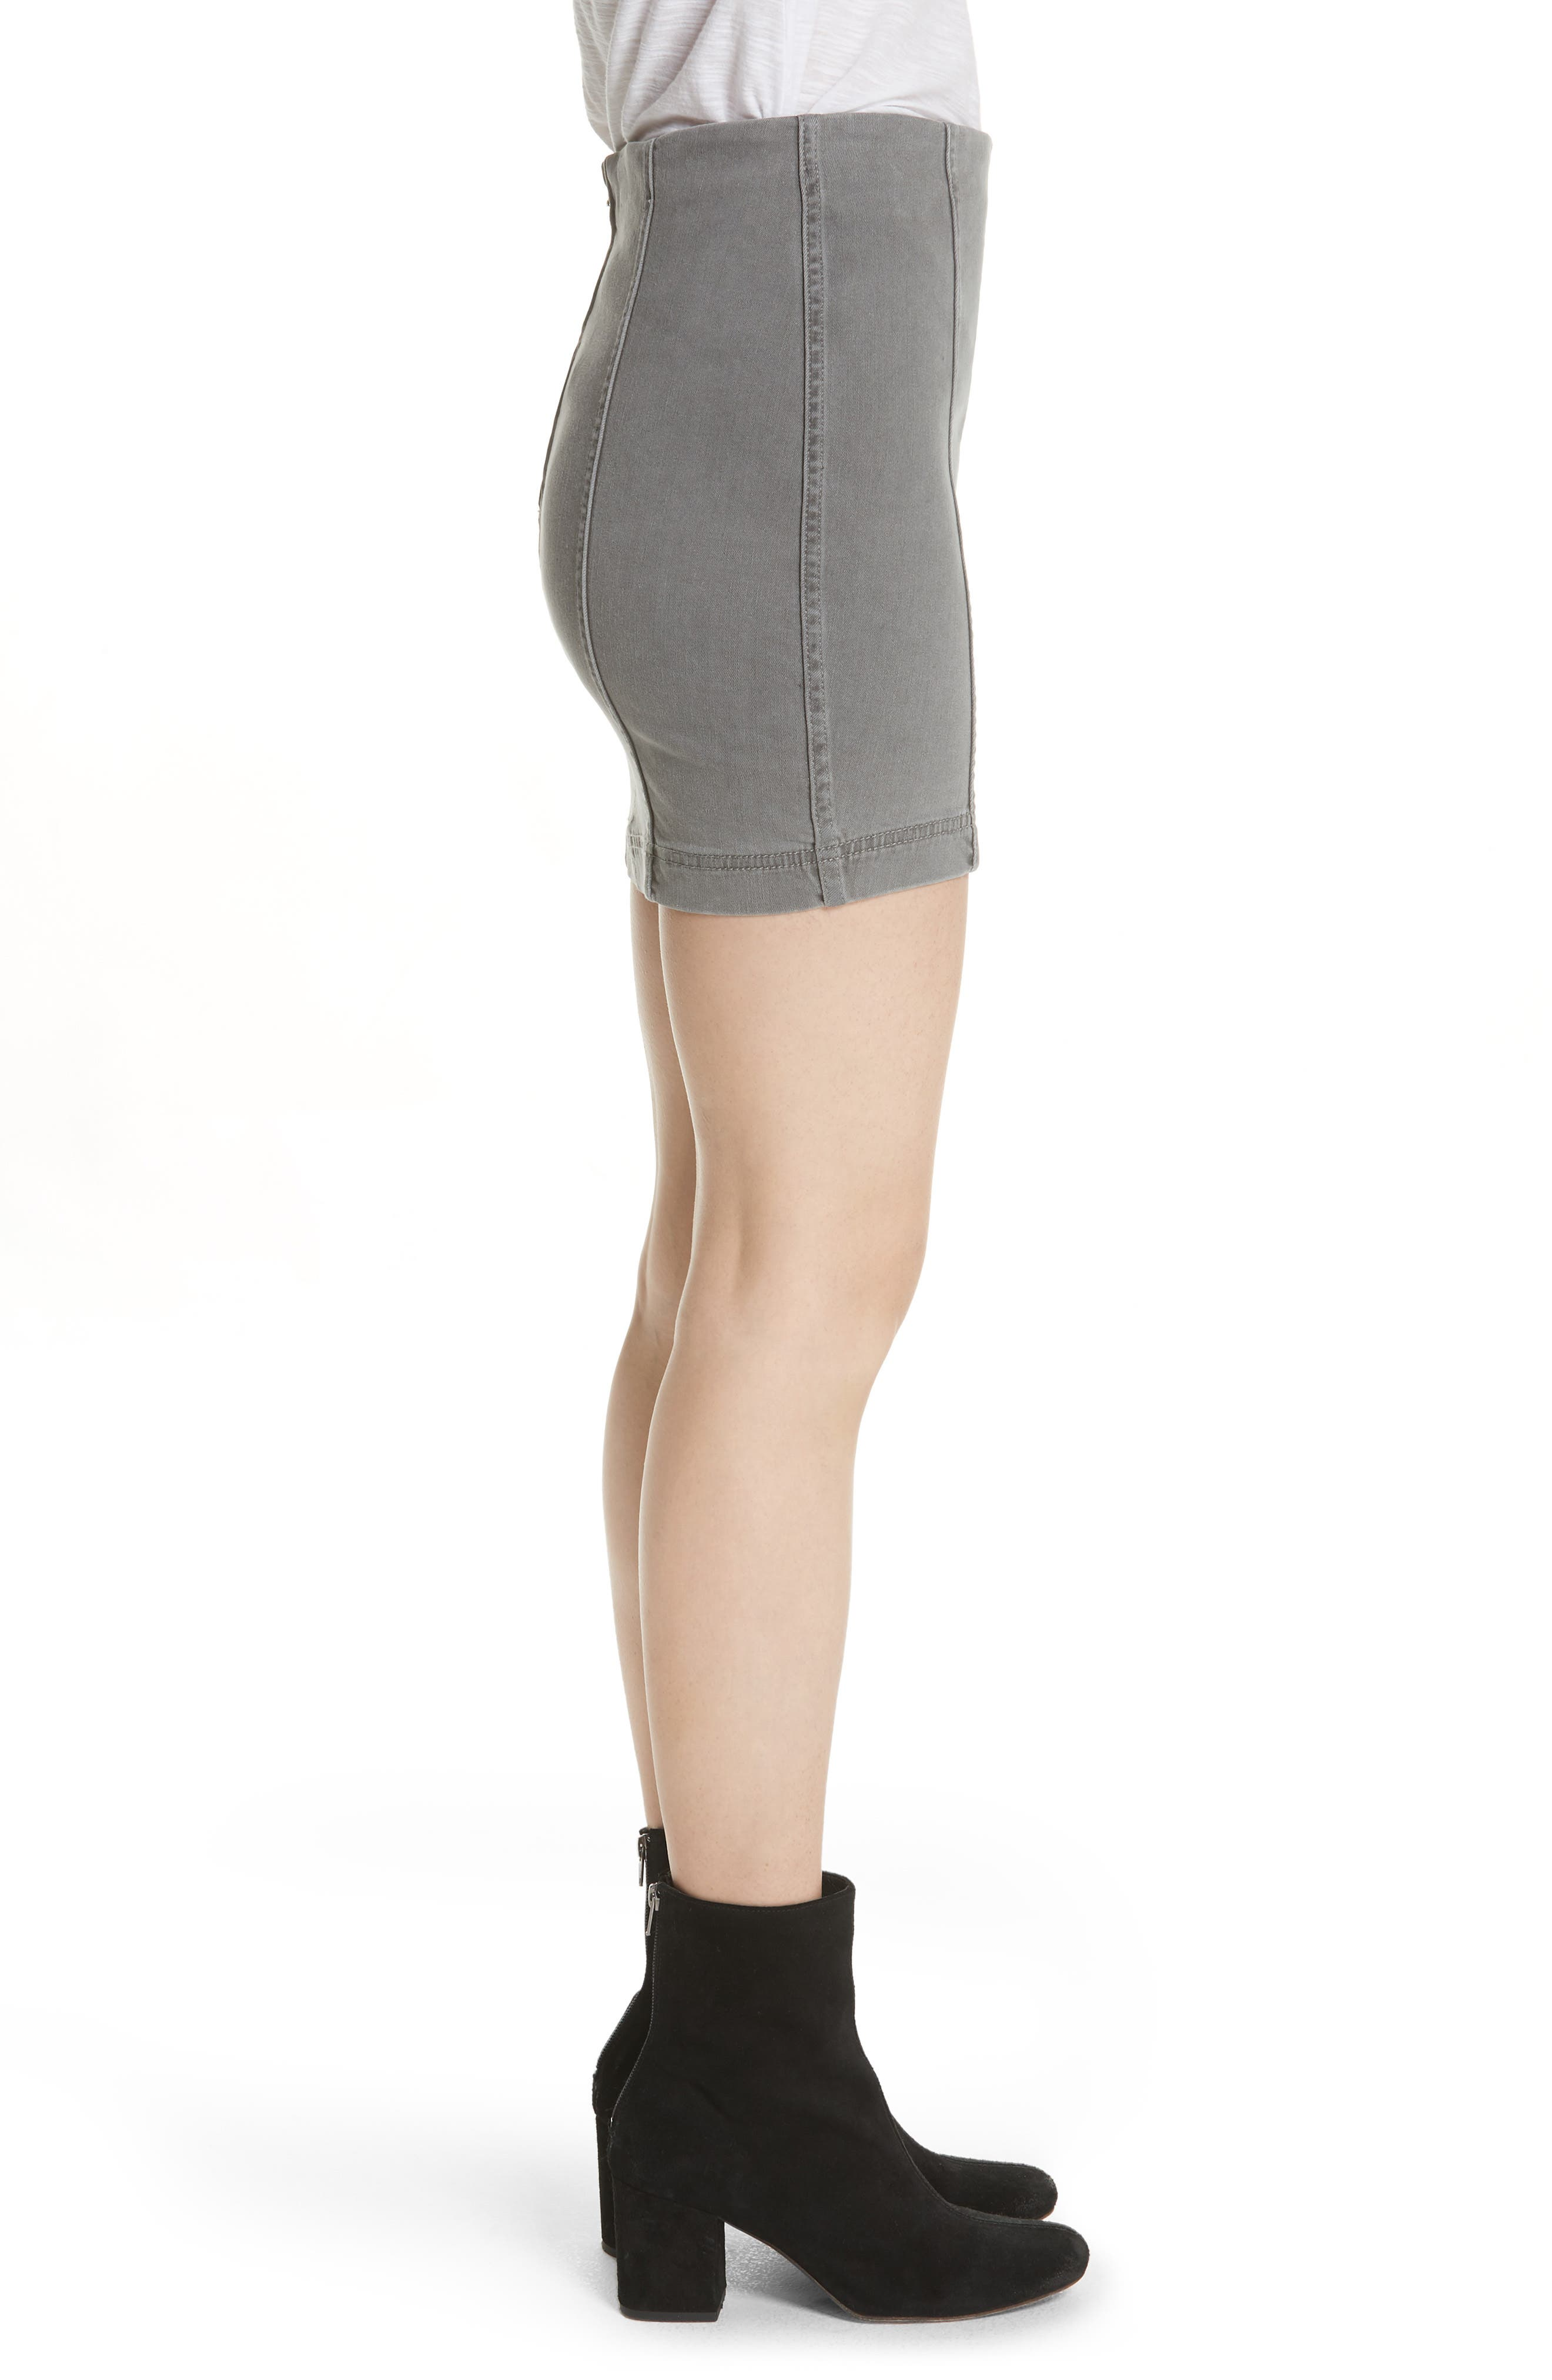 FREE PEOPLE, We the Free by Free People Modern Femme Denim Miniskirt, Alternate thumbnail 3, color, LIGHT GREY